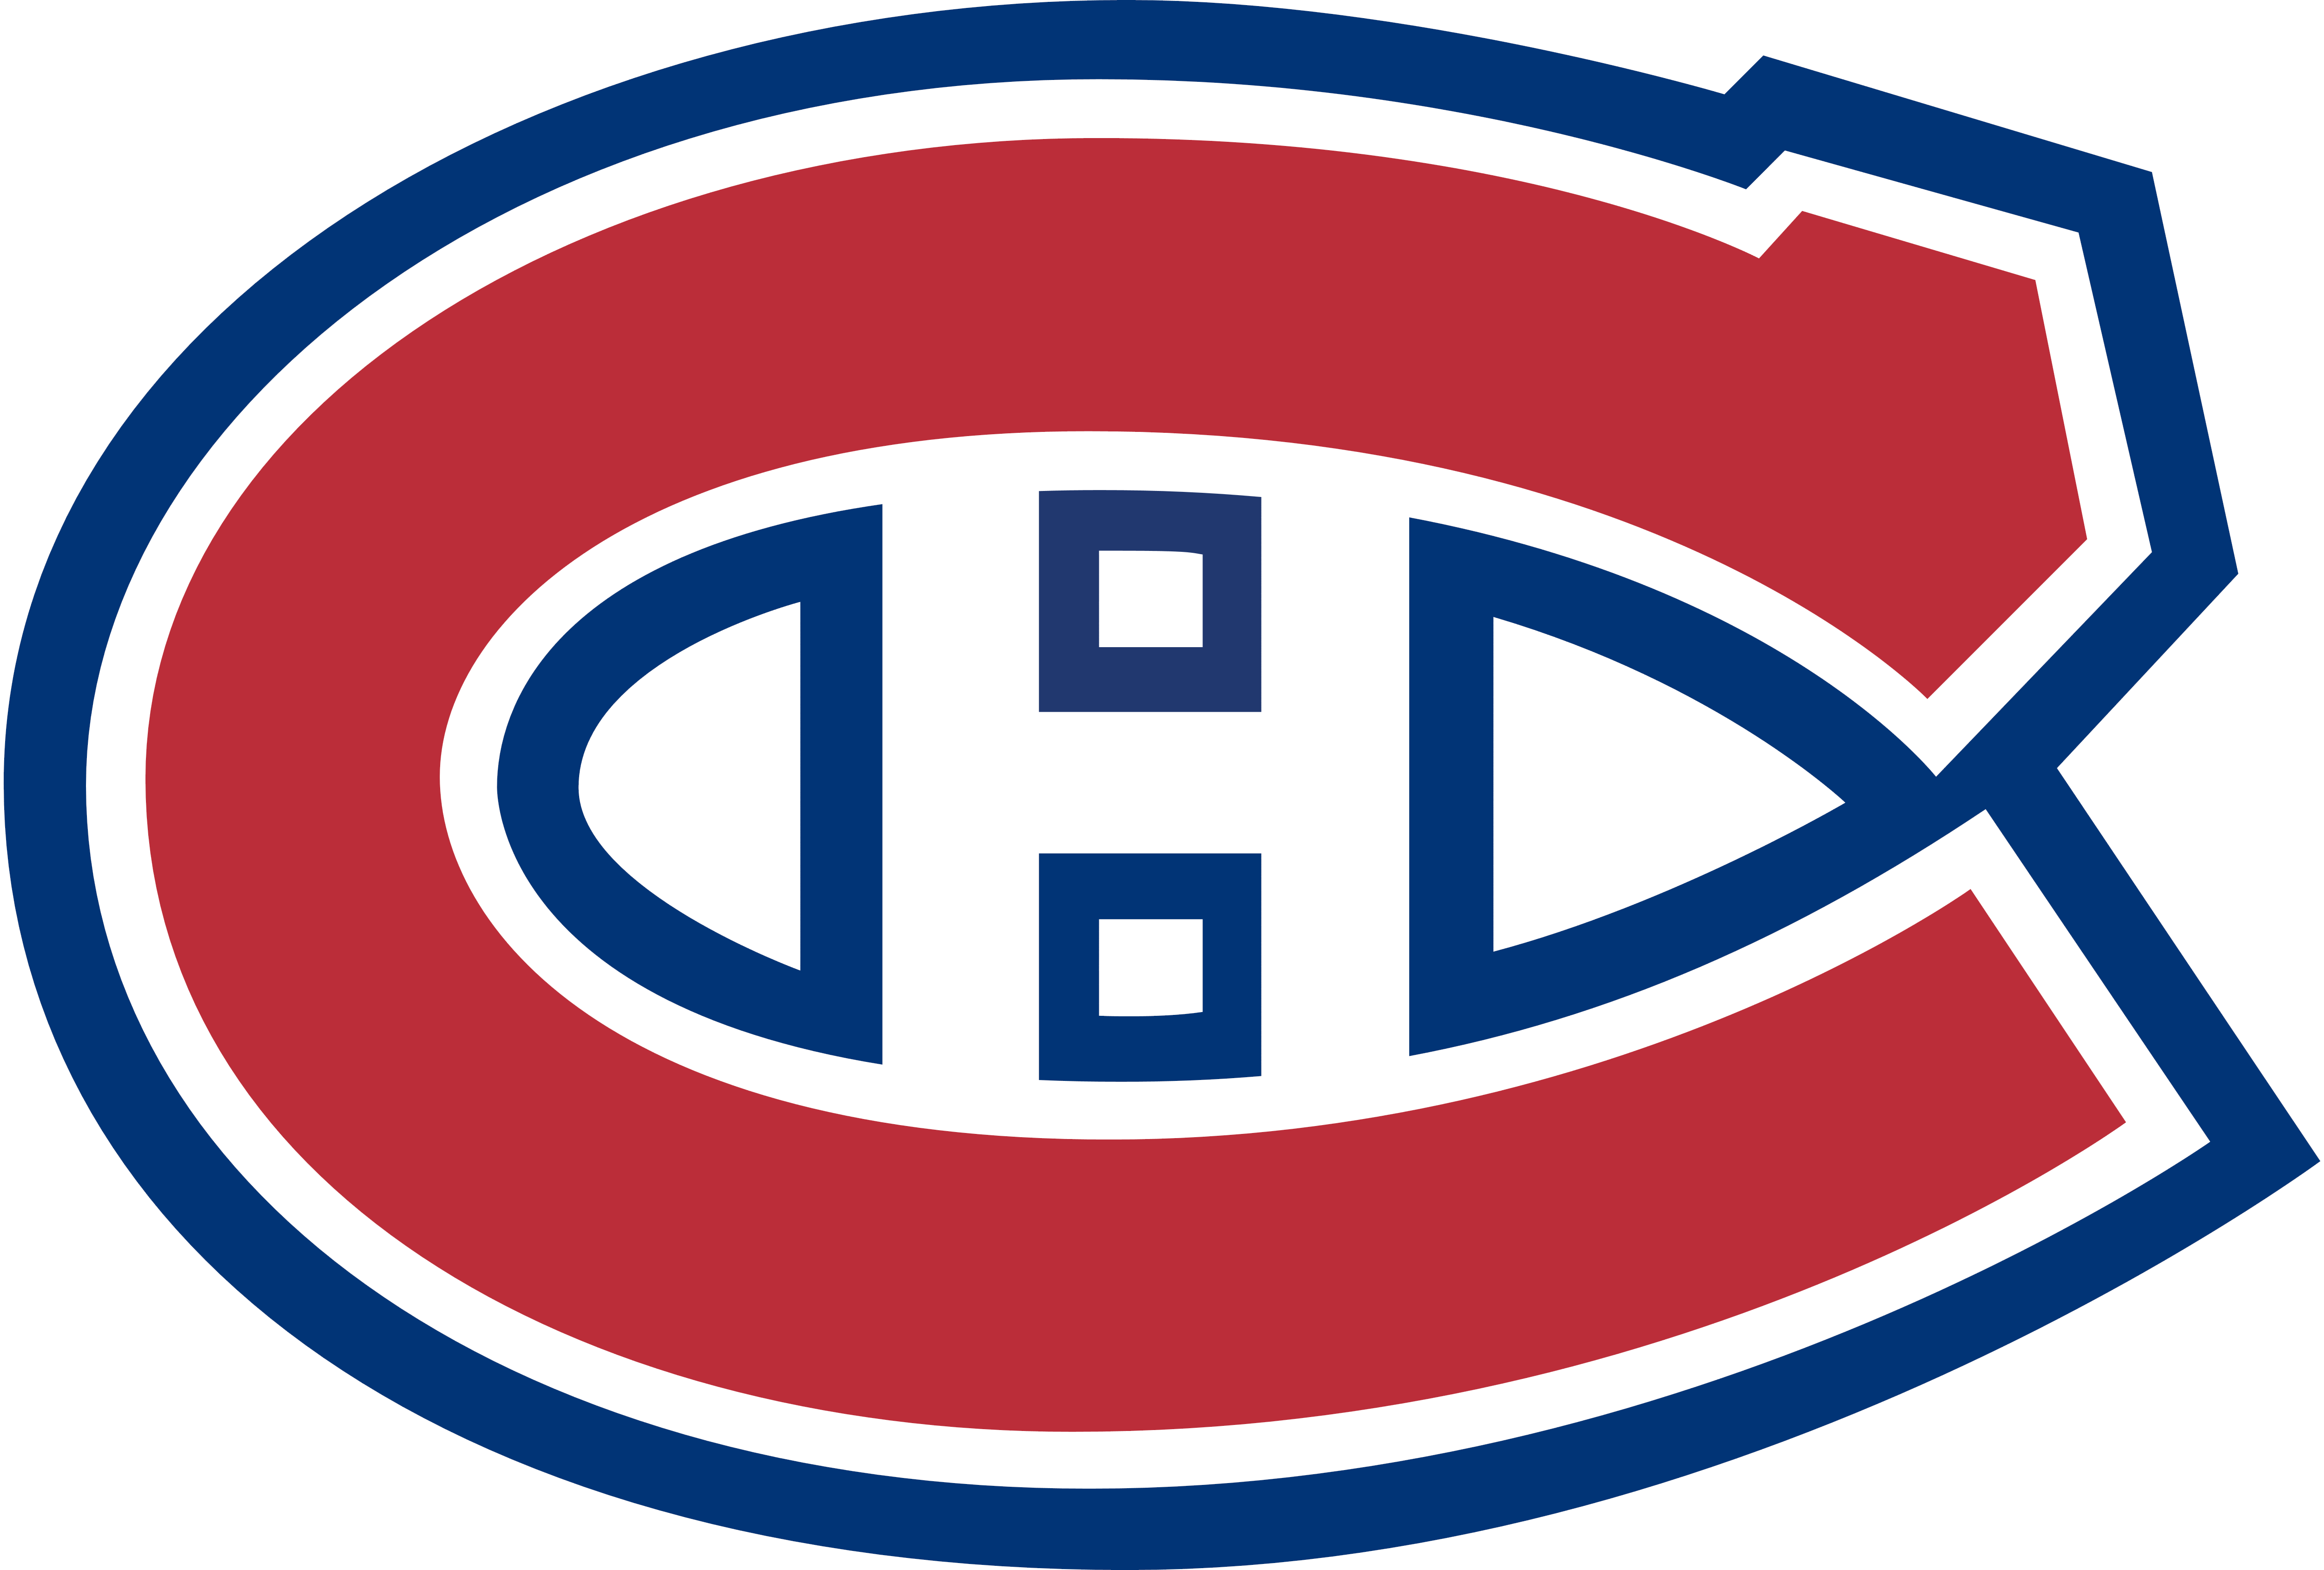 Montreal canadiens logos download - Montreal canadians logo ...